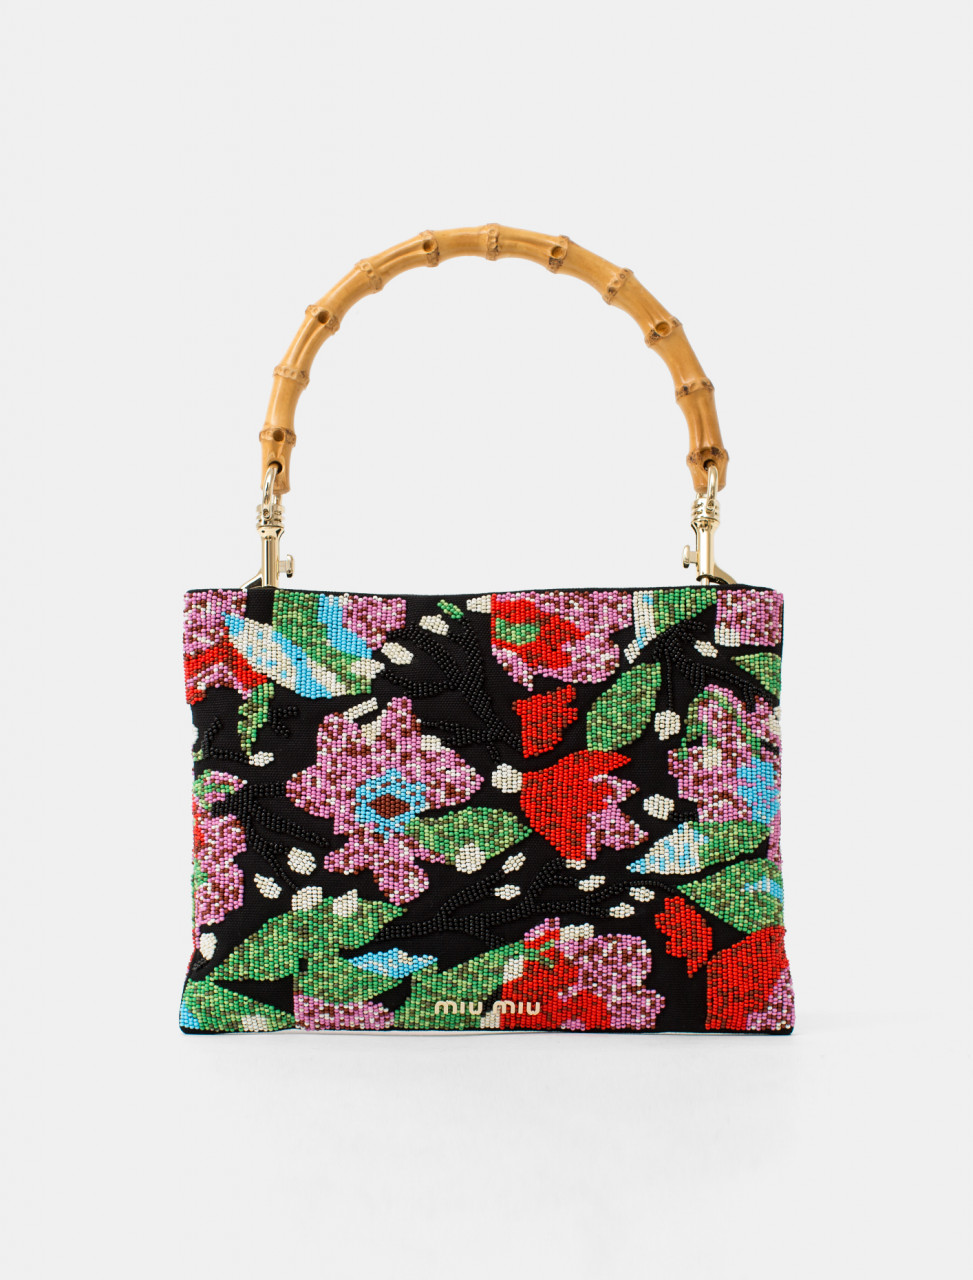 Miu Miu Beaded Floral Handbag